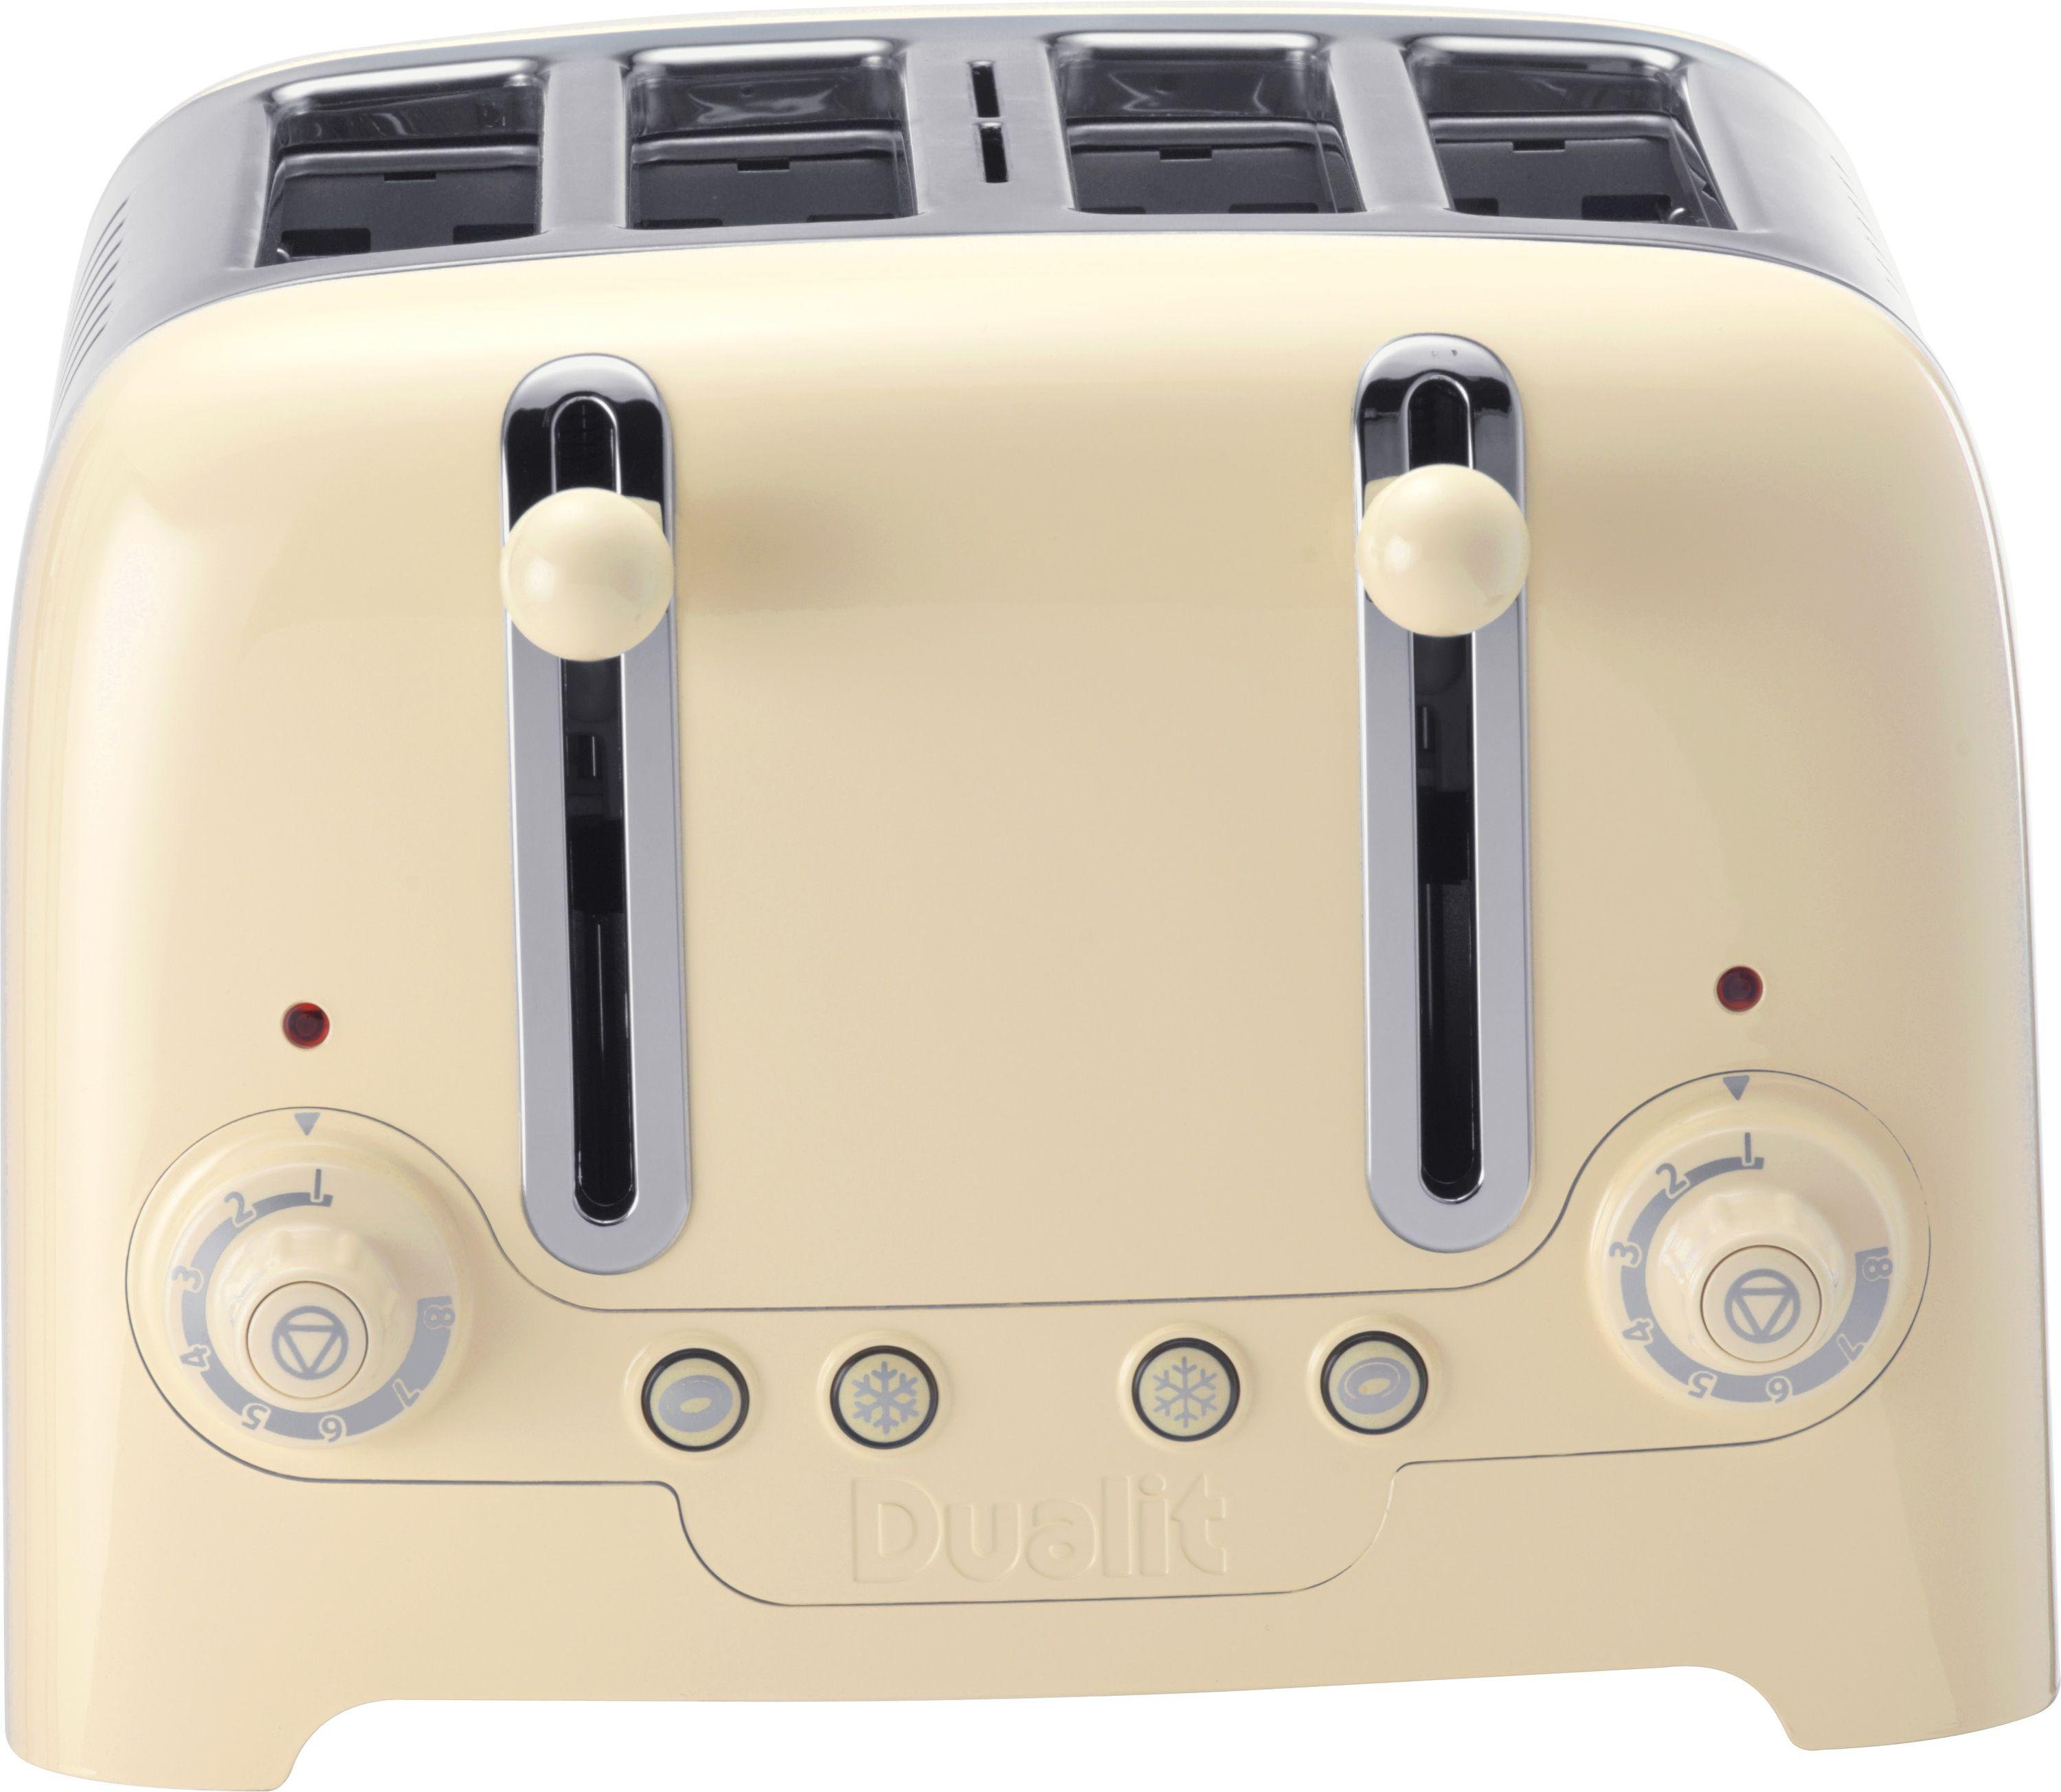 Image of Dualit - Toaster - 46201 - 4 Slice - Cream